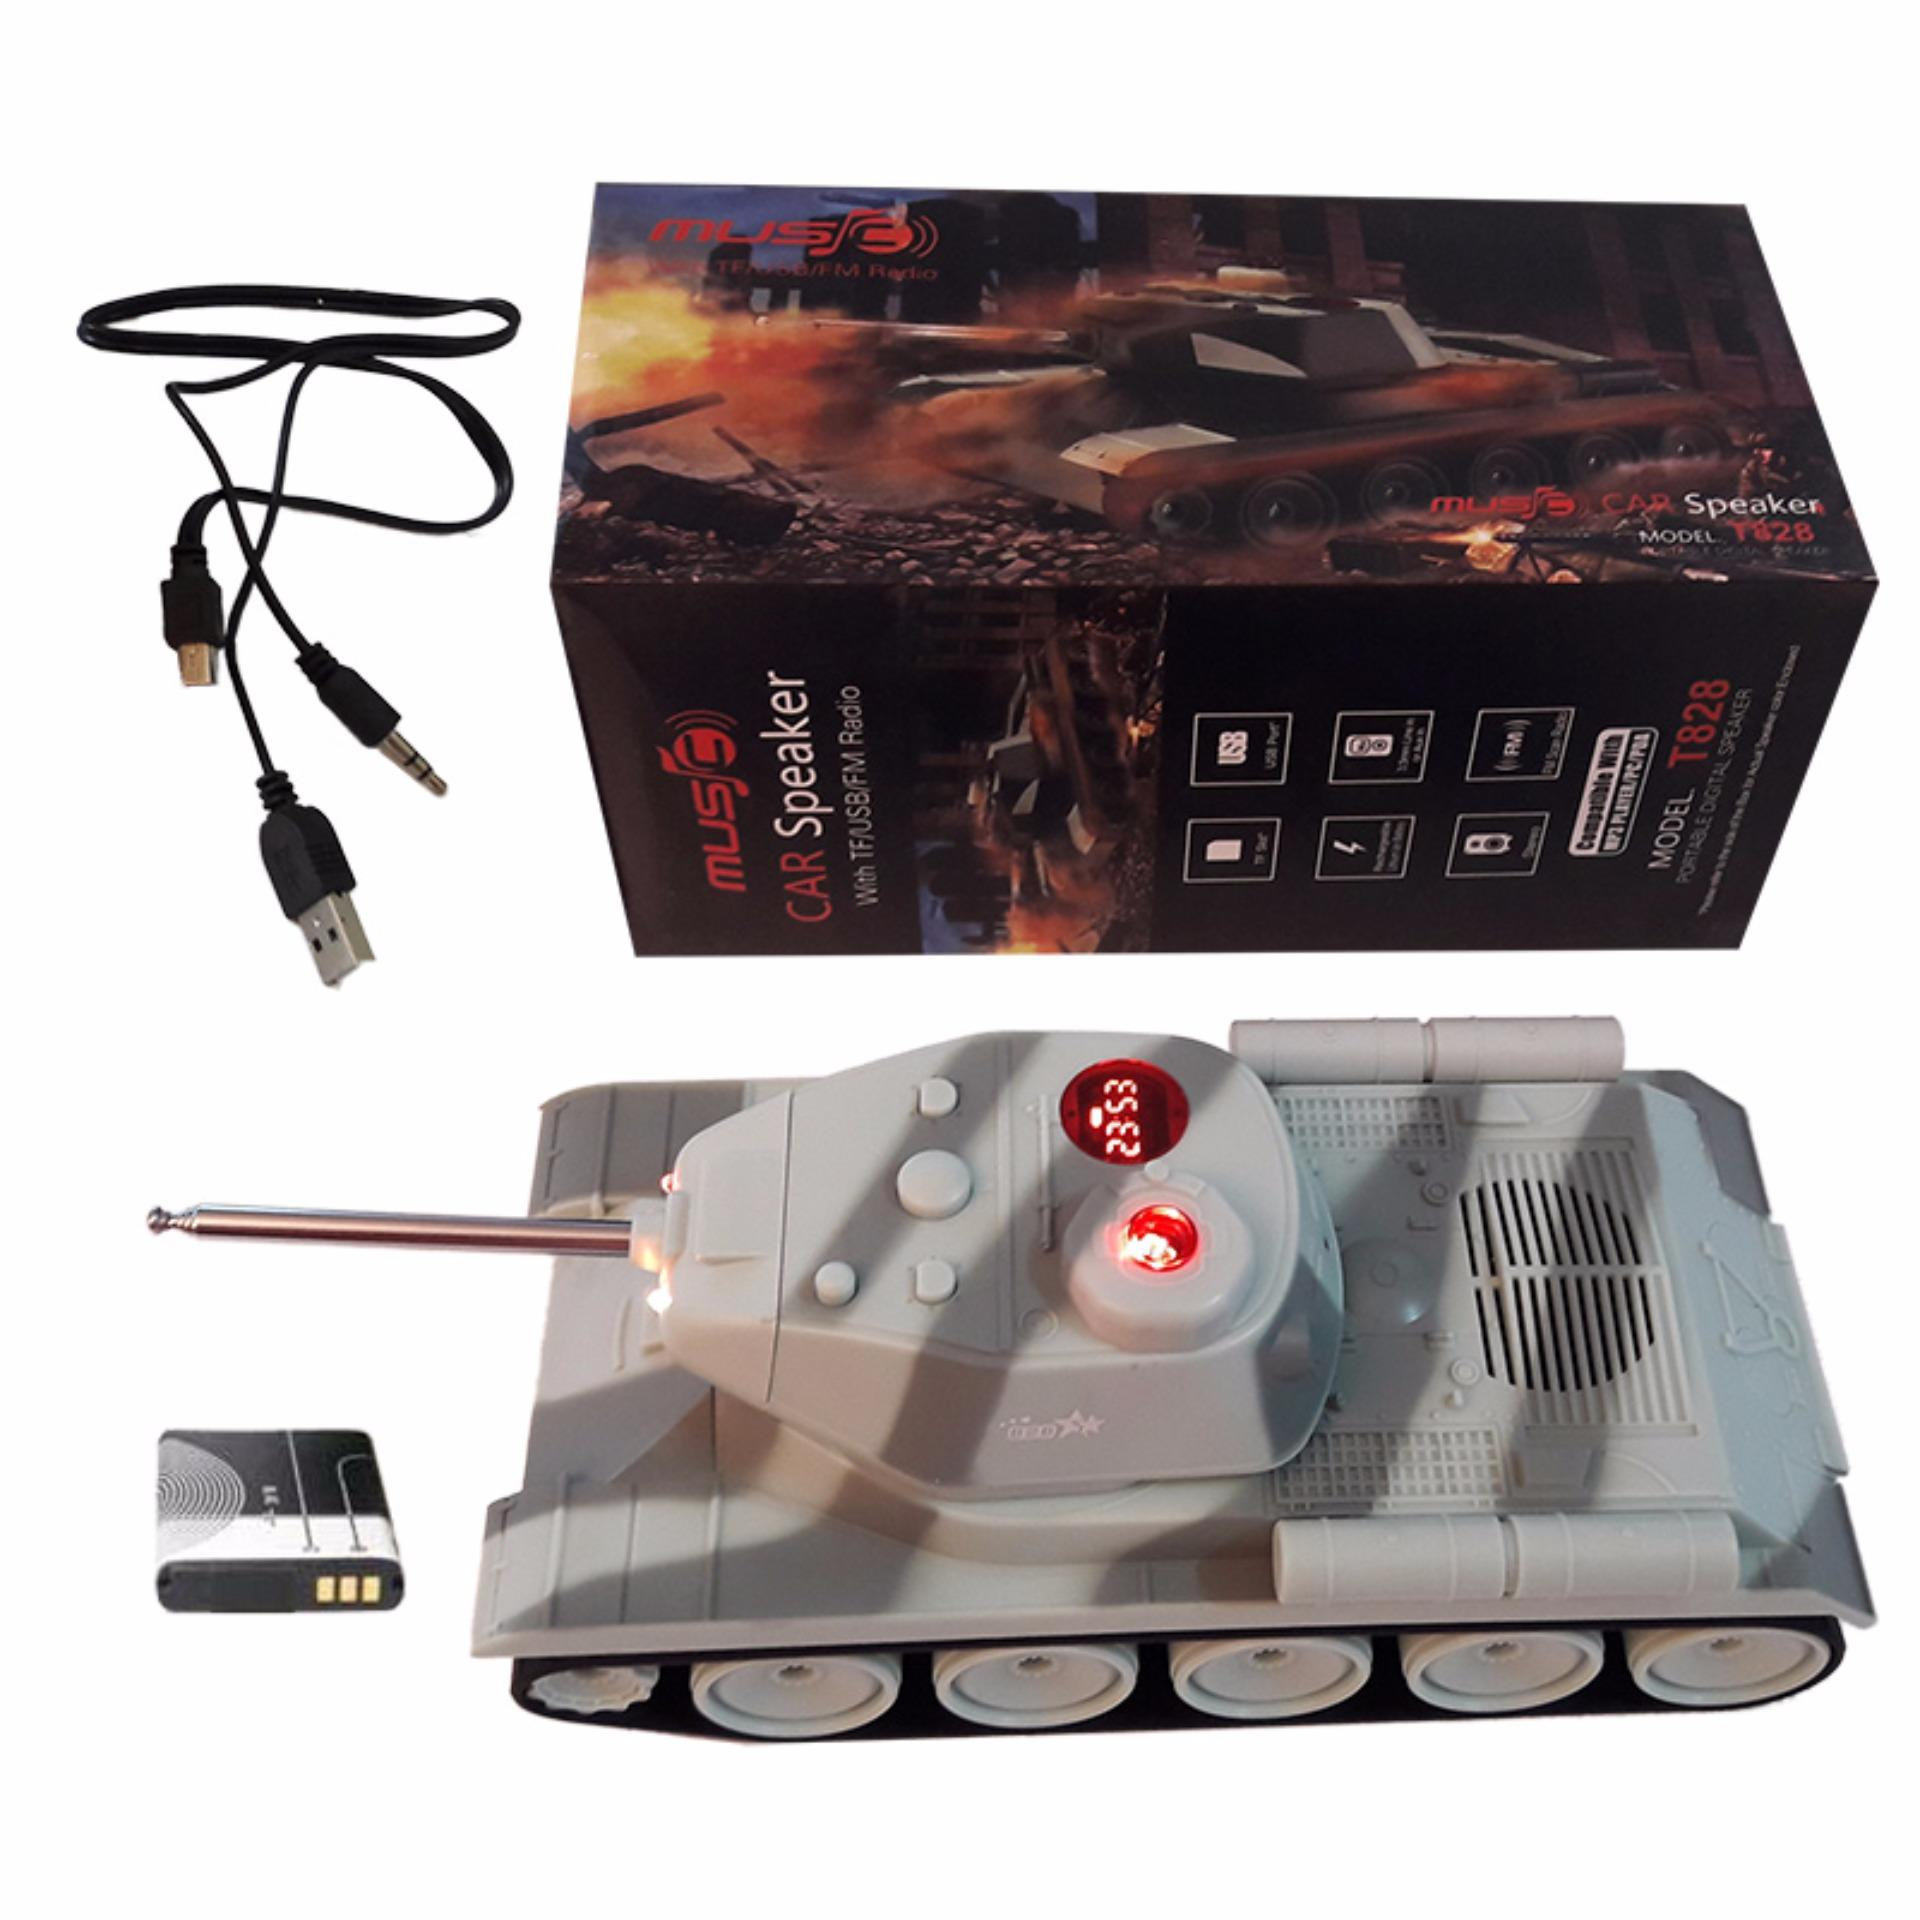 Harga Eelic Spr T828 Abu Abu Army Model Tank Mini Digital Speaker Baterai Charge Nyaring Paling Murah